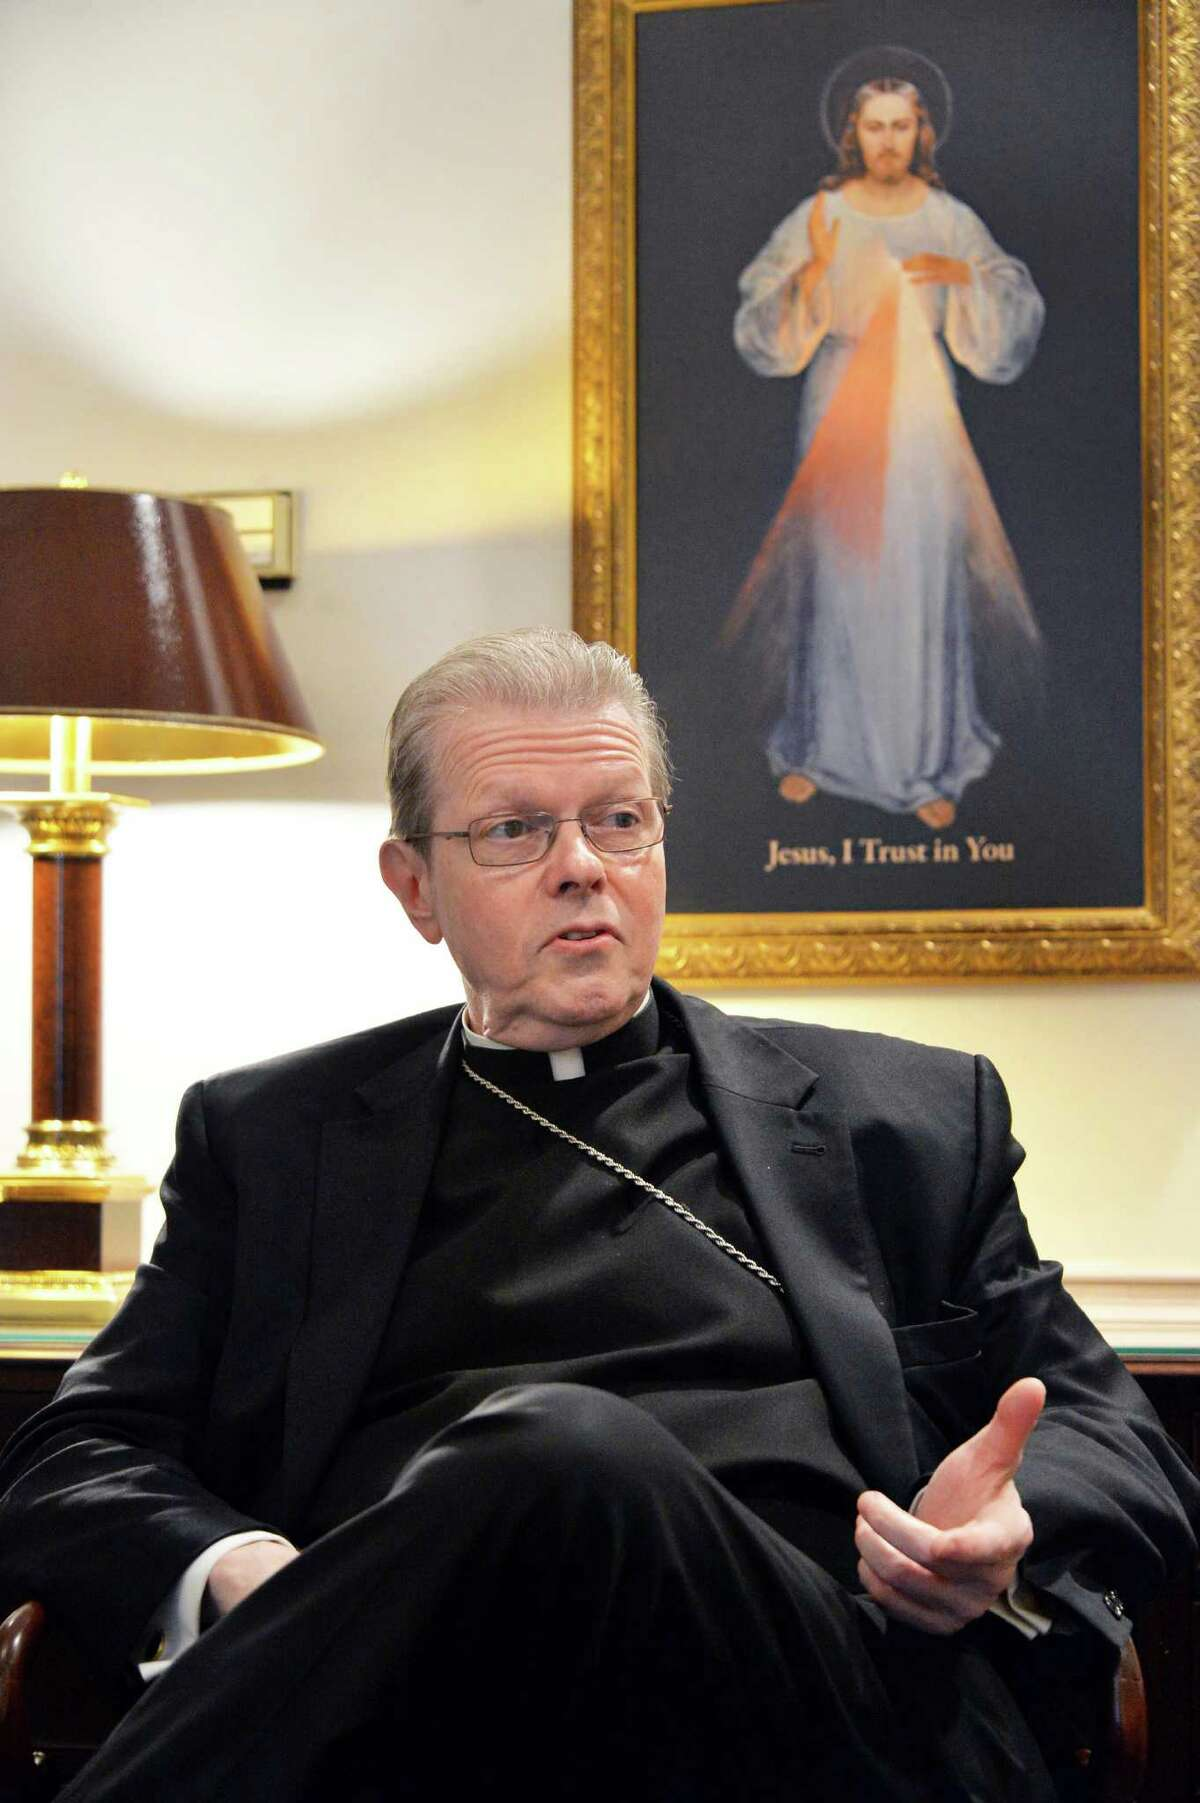 Bishop Edward Scharfenberger reflects on his first few months as bishop of the Albany Roman Catholic diocese Thursday July 31, 2014, at his office in Albany, NY. (John Carl D'Annibale / Times Union)